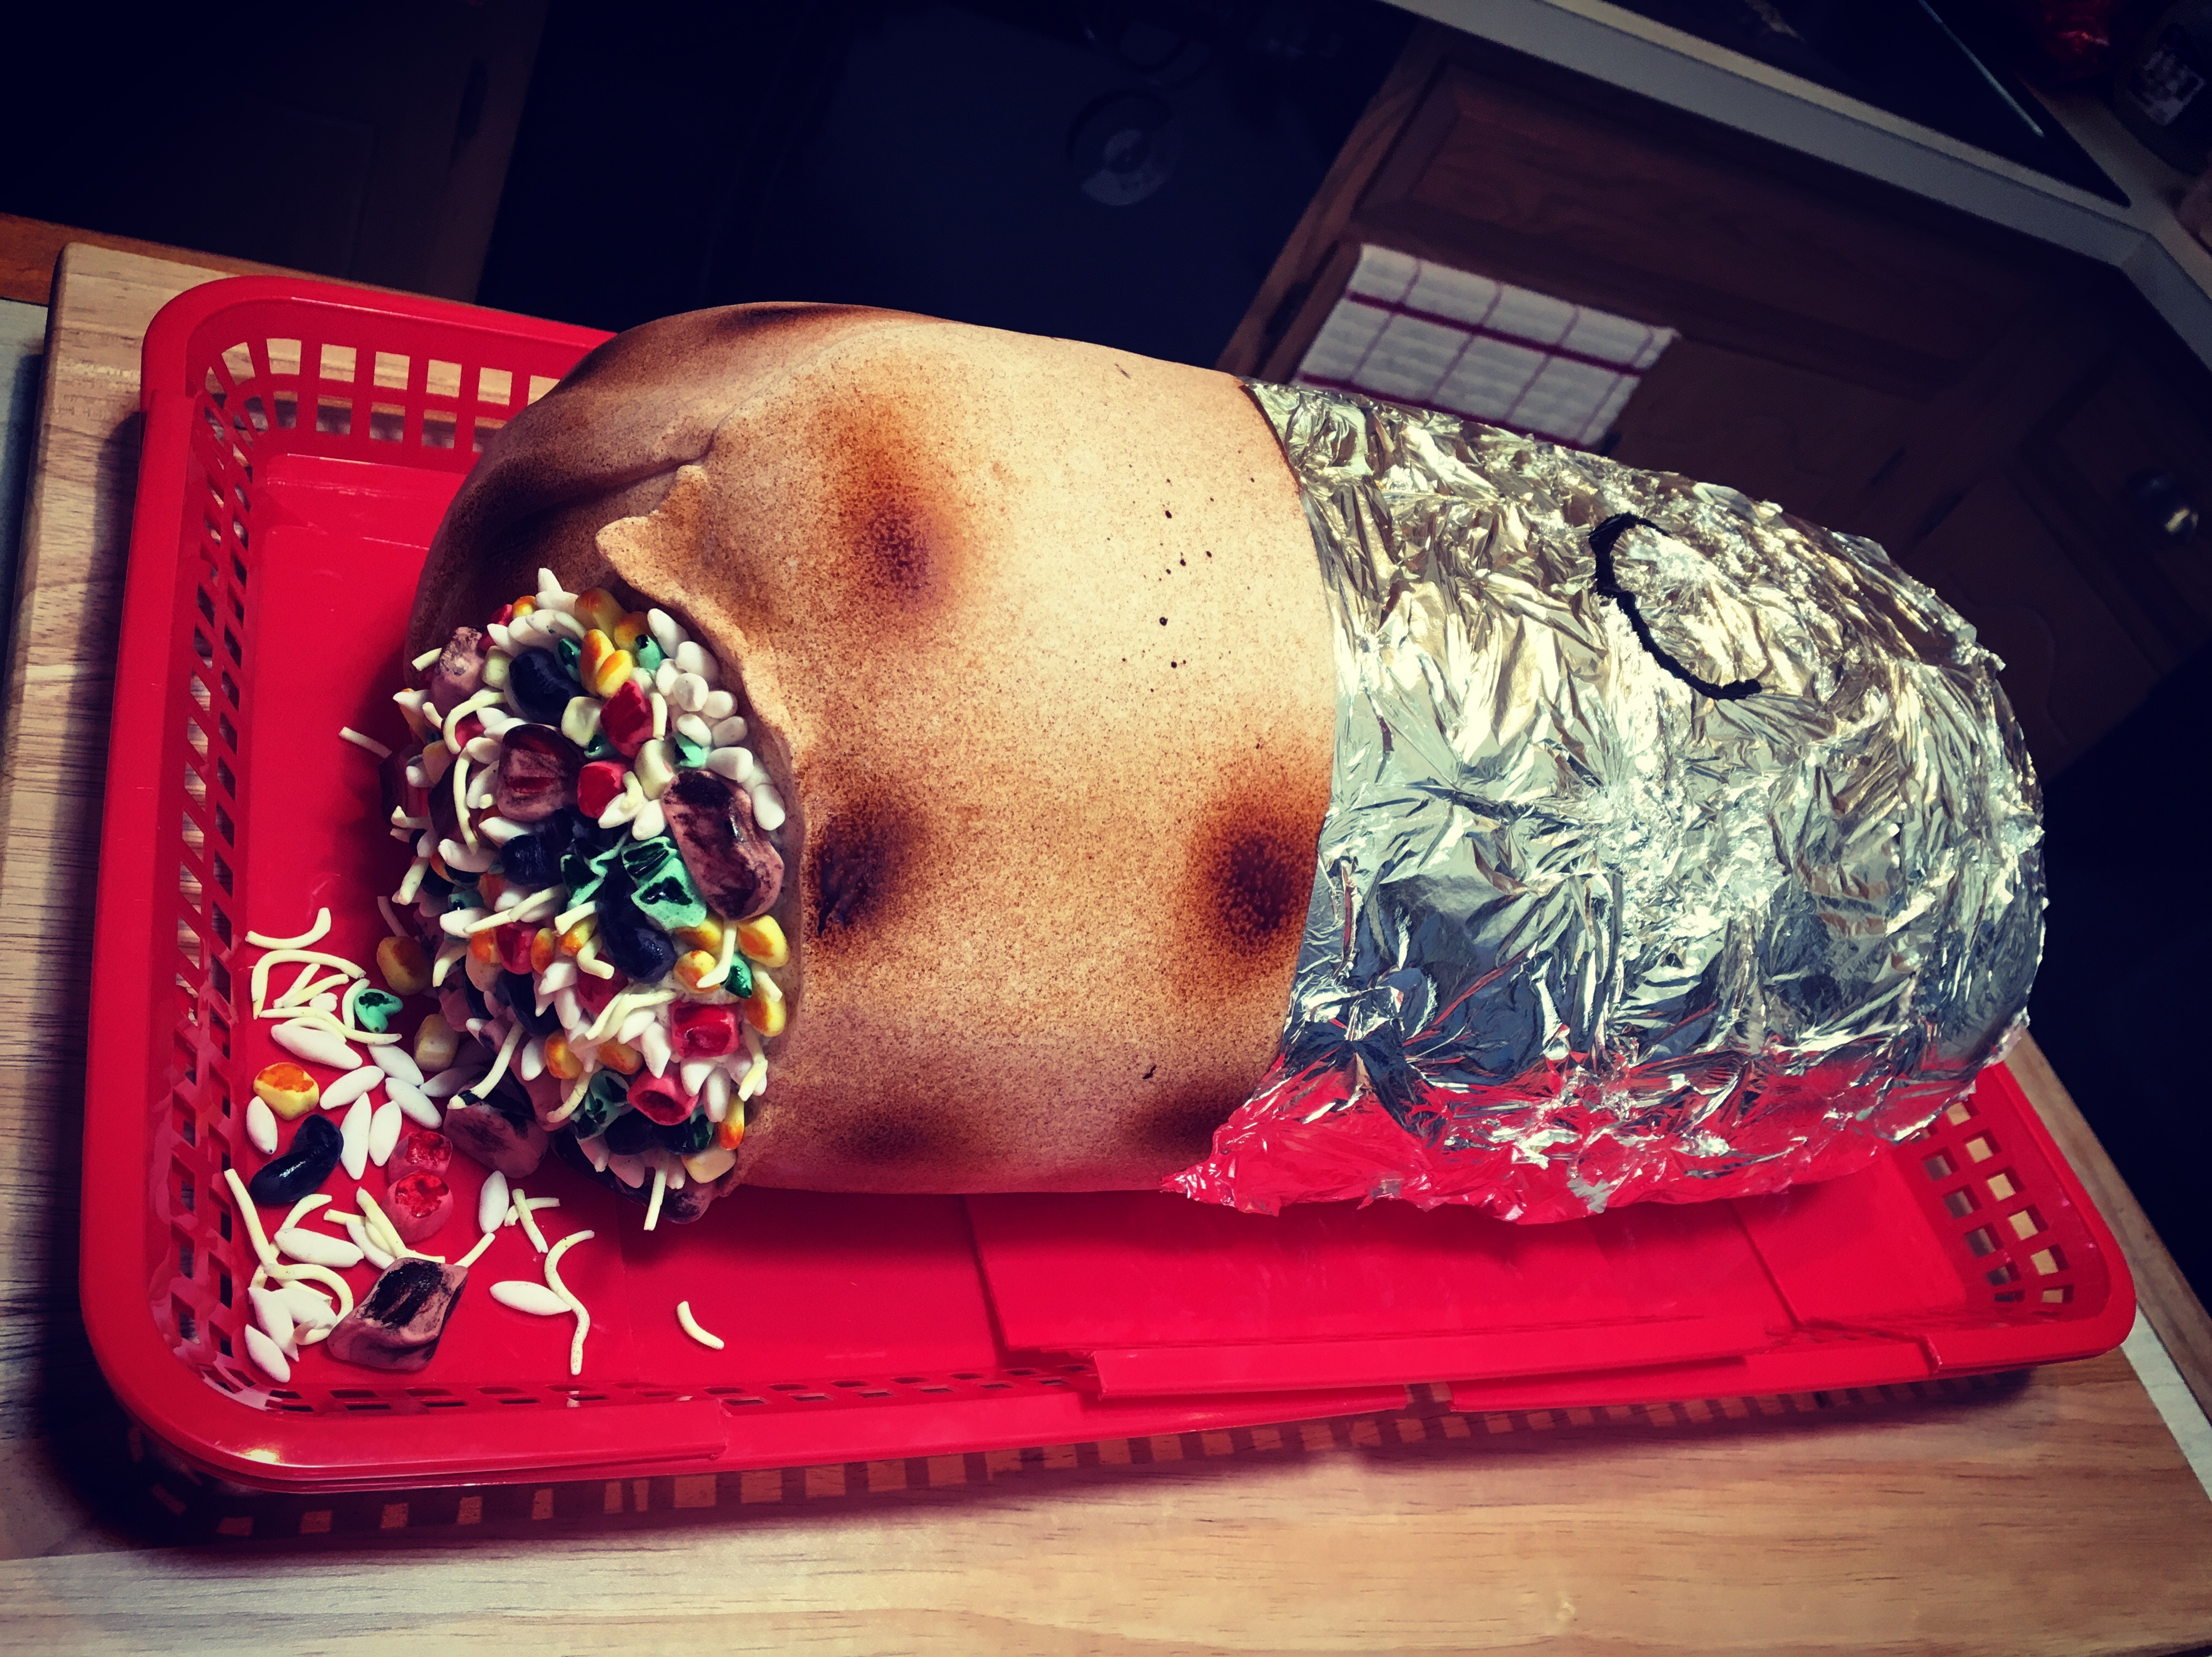 Chipotle Burrito Groom's Cake